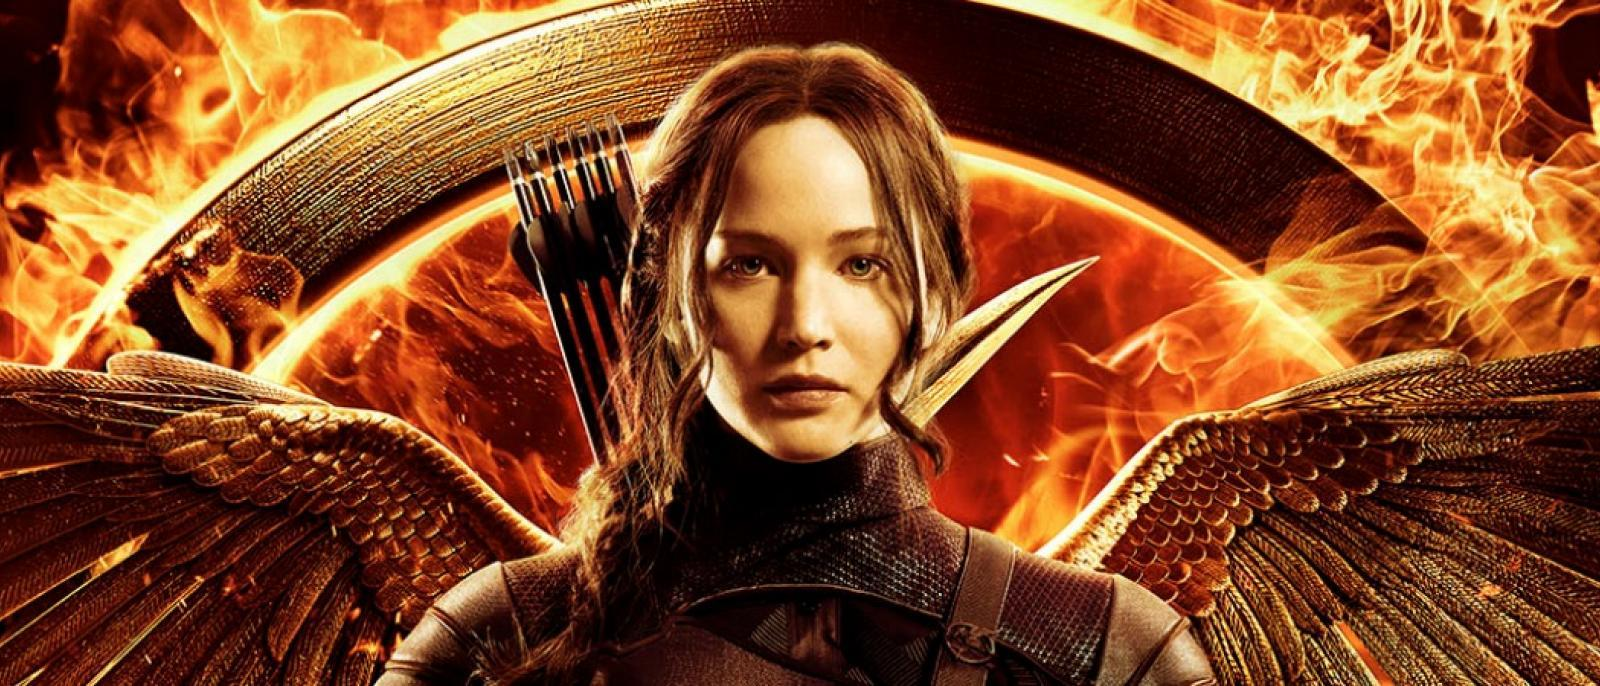 the-20hunger-20games-20mockingjay-20part-201-20--20poster-1200x450